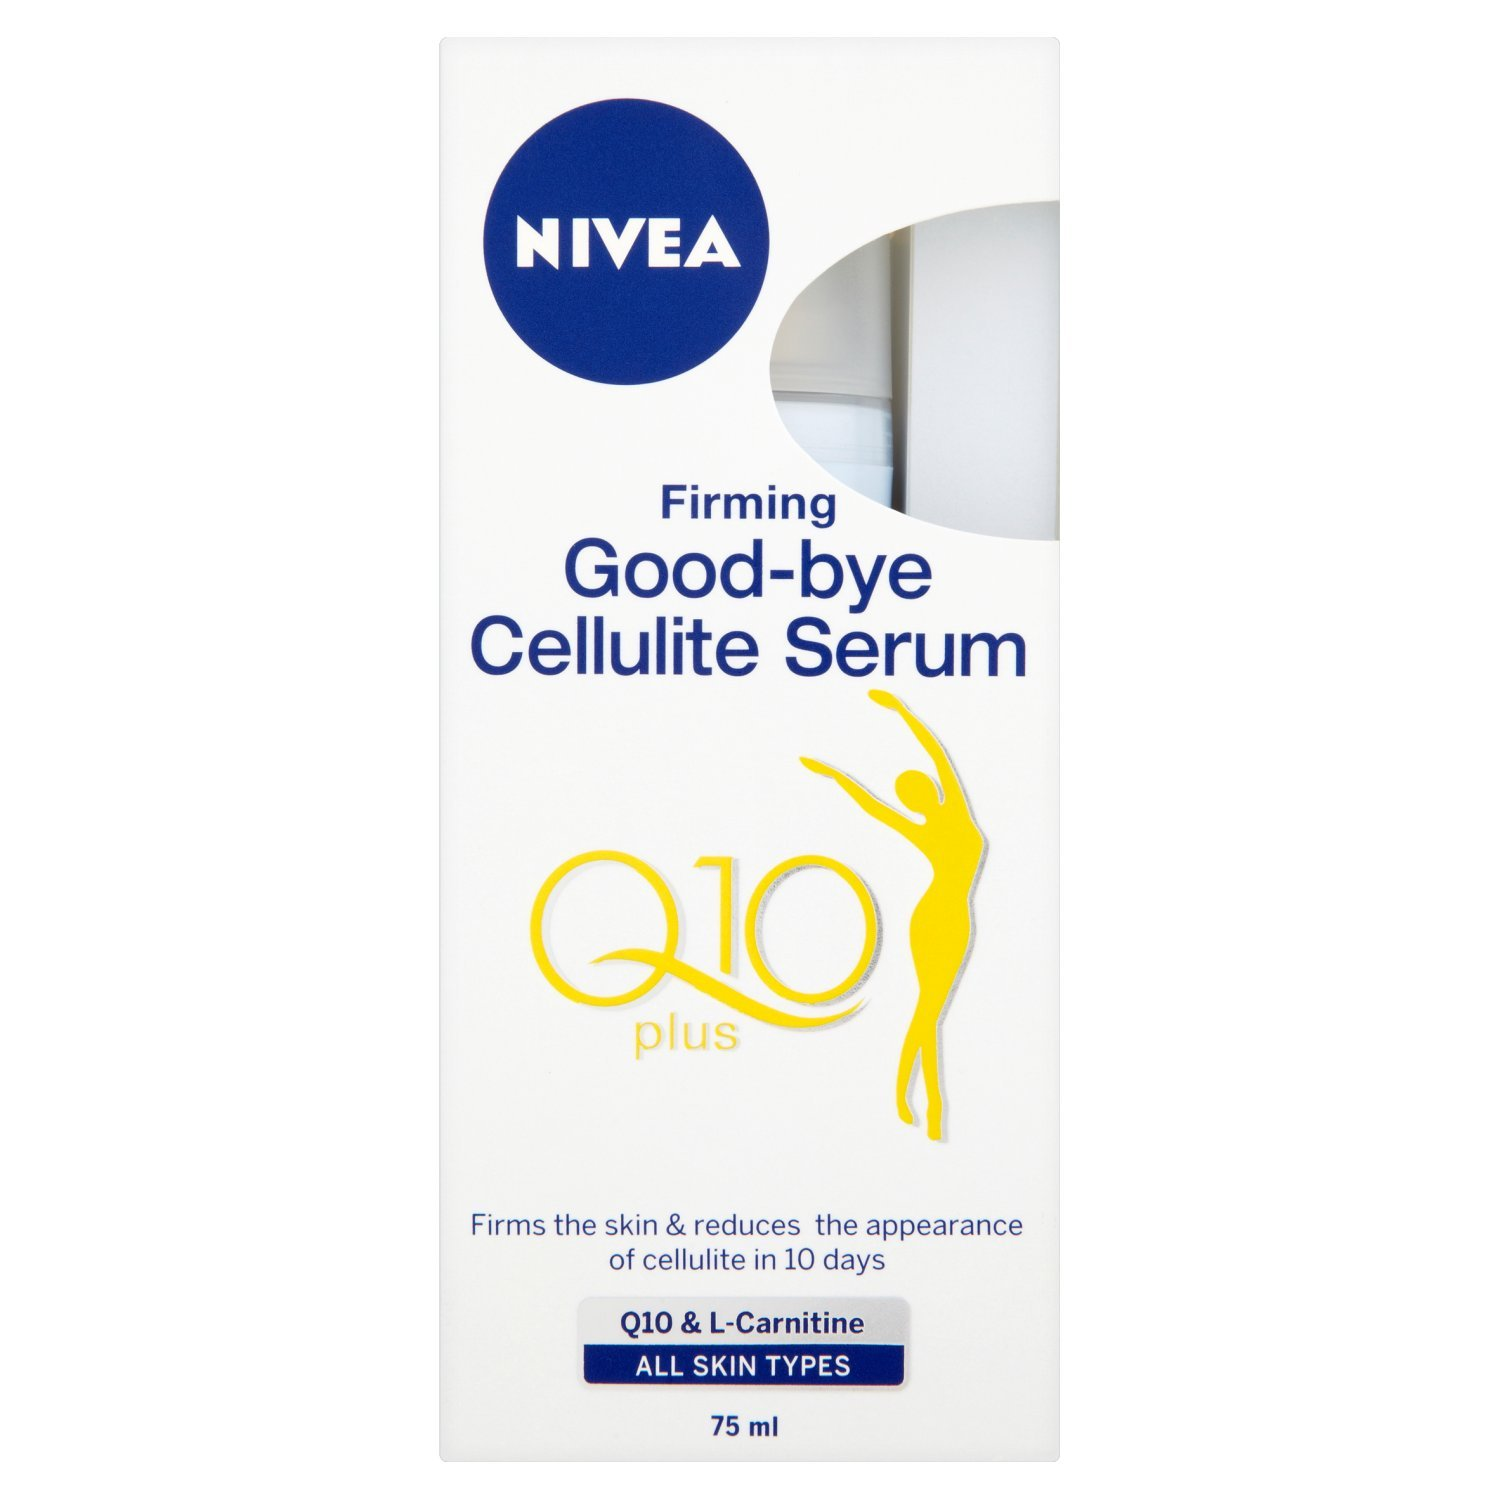 Nivea Q10 Energy Plus Firming Good-Bye Cellulite Serum - 75 ml Beiersdorf UK Ltd 80235